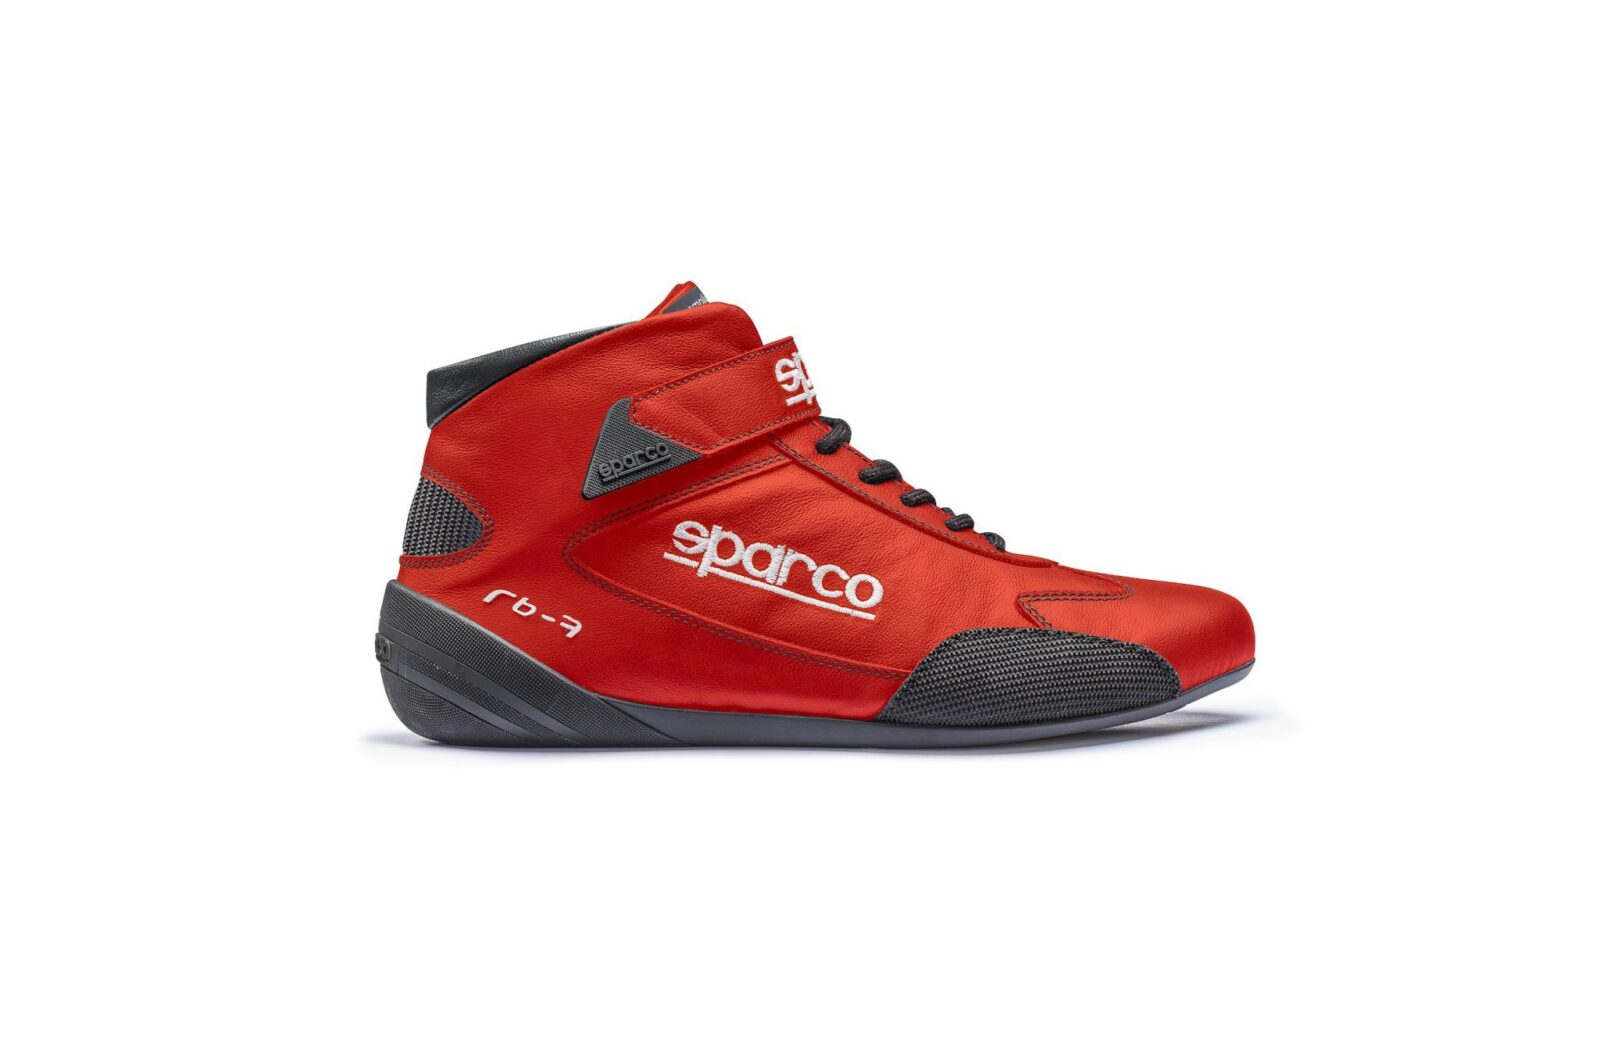 Sparco Cross RB 7 driving shoe 1600x1041 - Sparco Cross RB-7 Driving Shoe